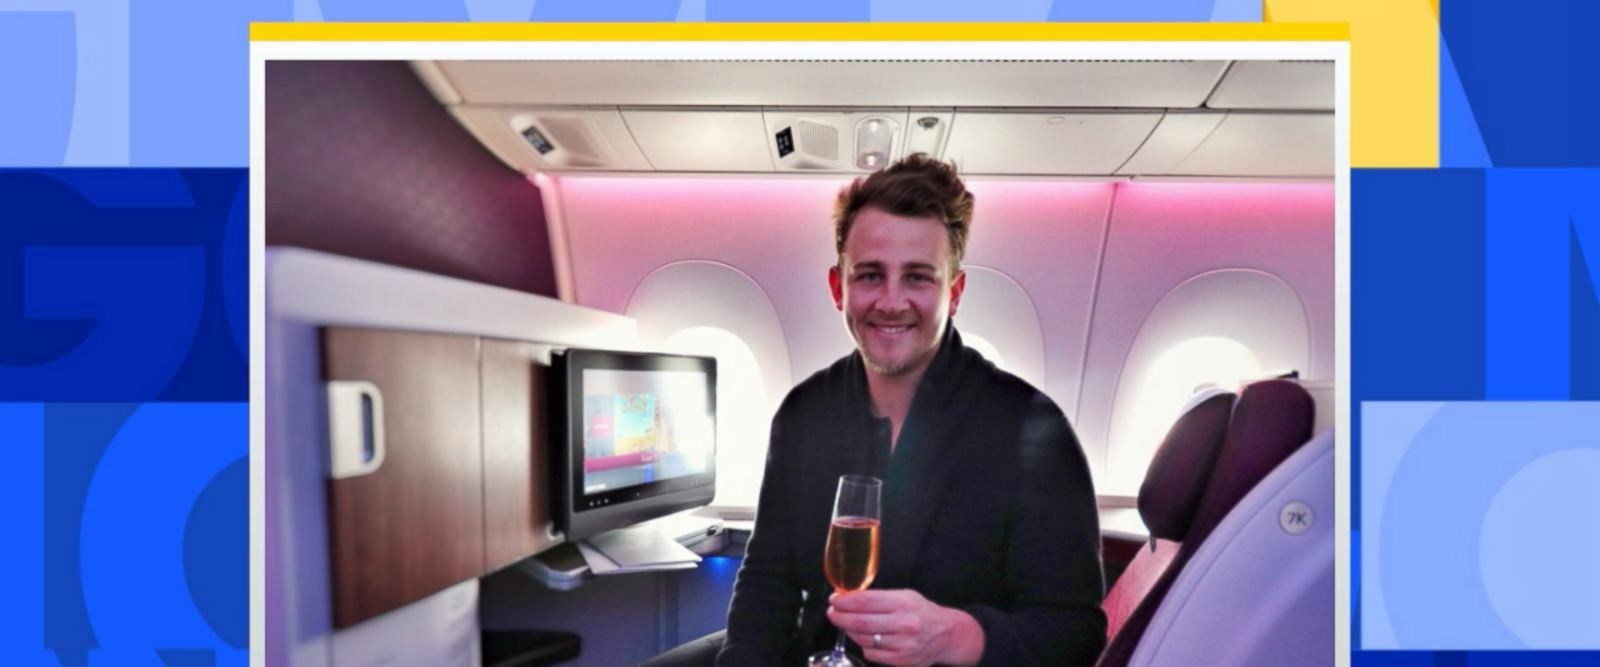 VIDEO: Travel blogger will 'gladly' offer you an upgrade if you spot him at the airport